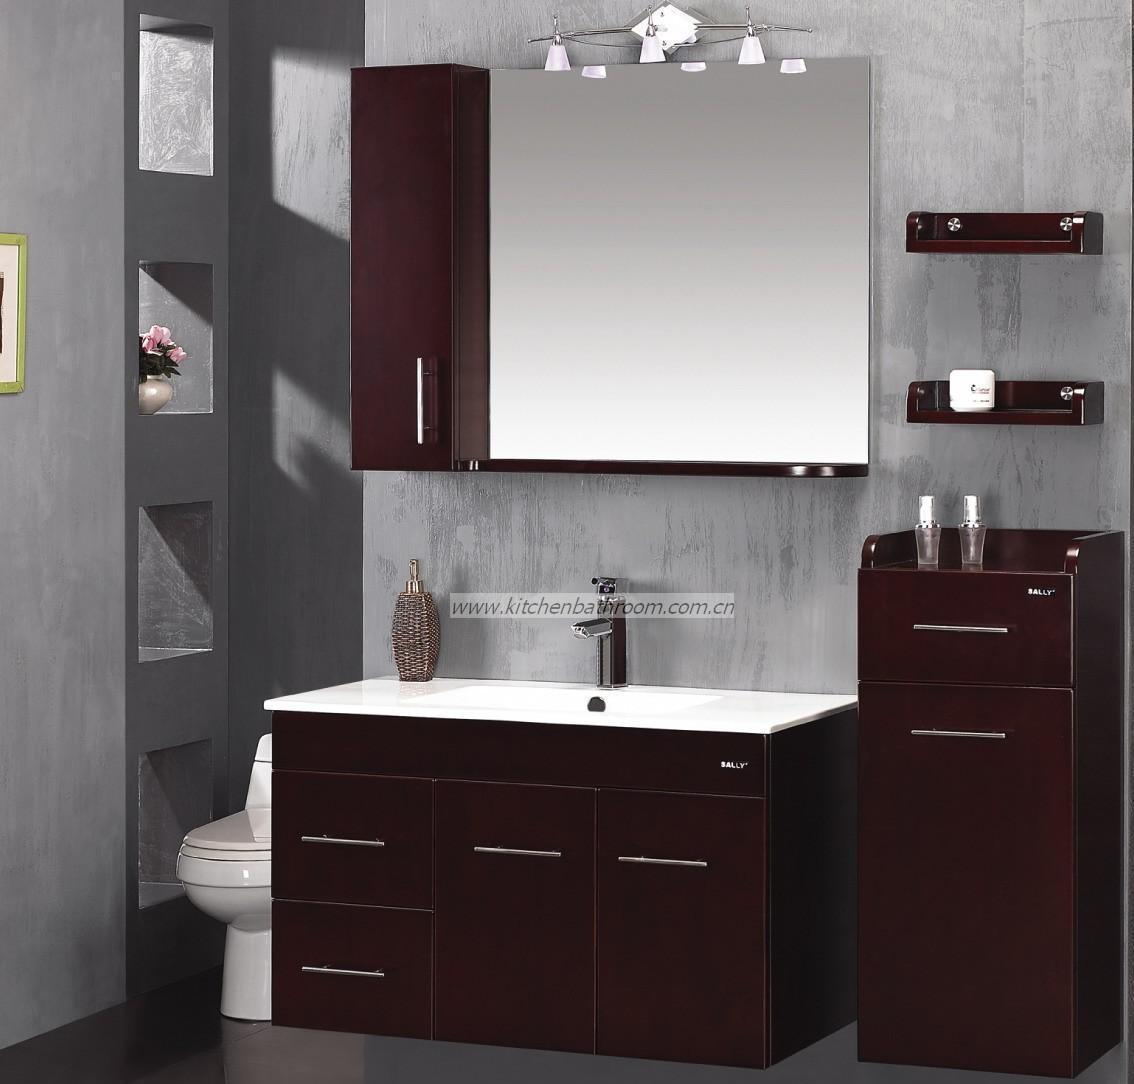 China bathroom cabinets yxbc 2022 china bathroom for Furniture ideas for bathroom